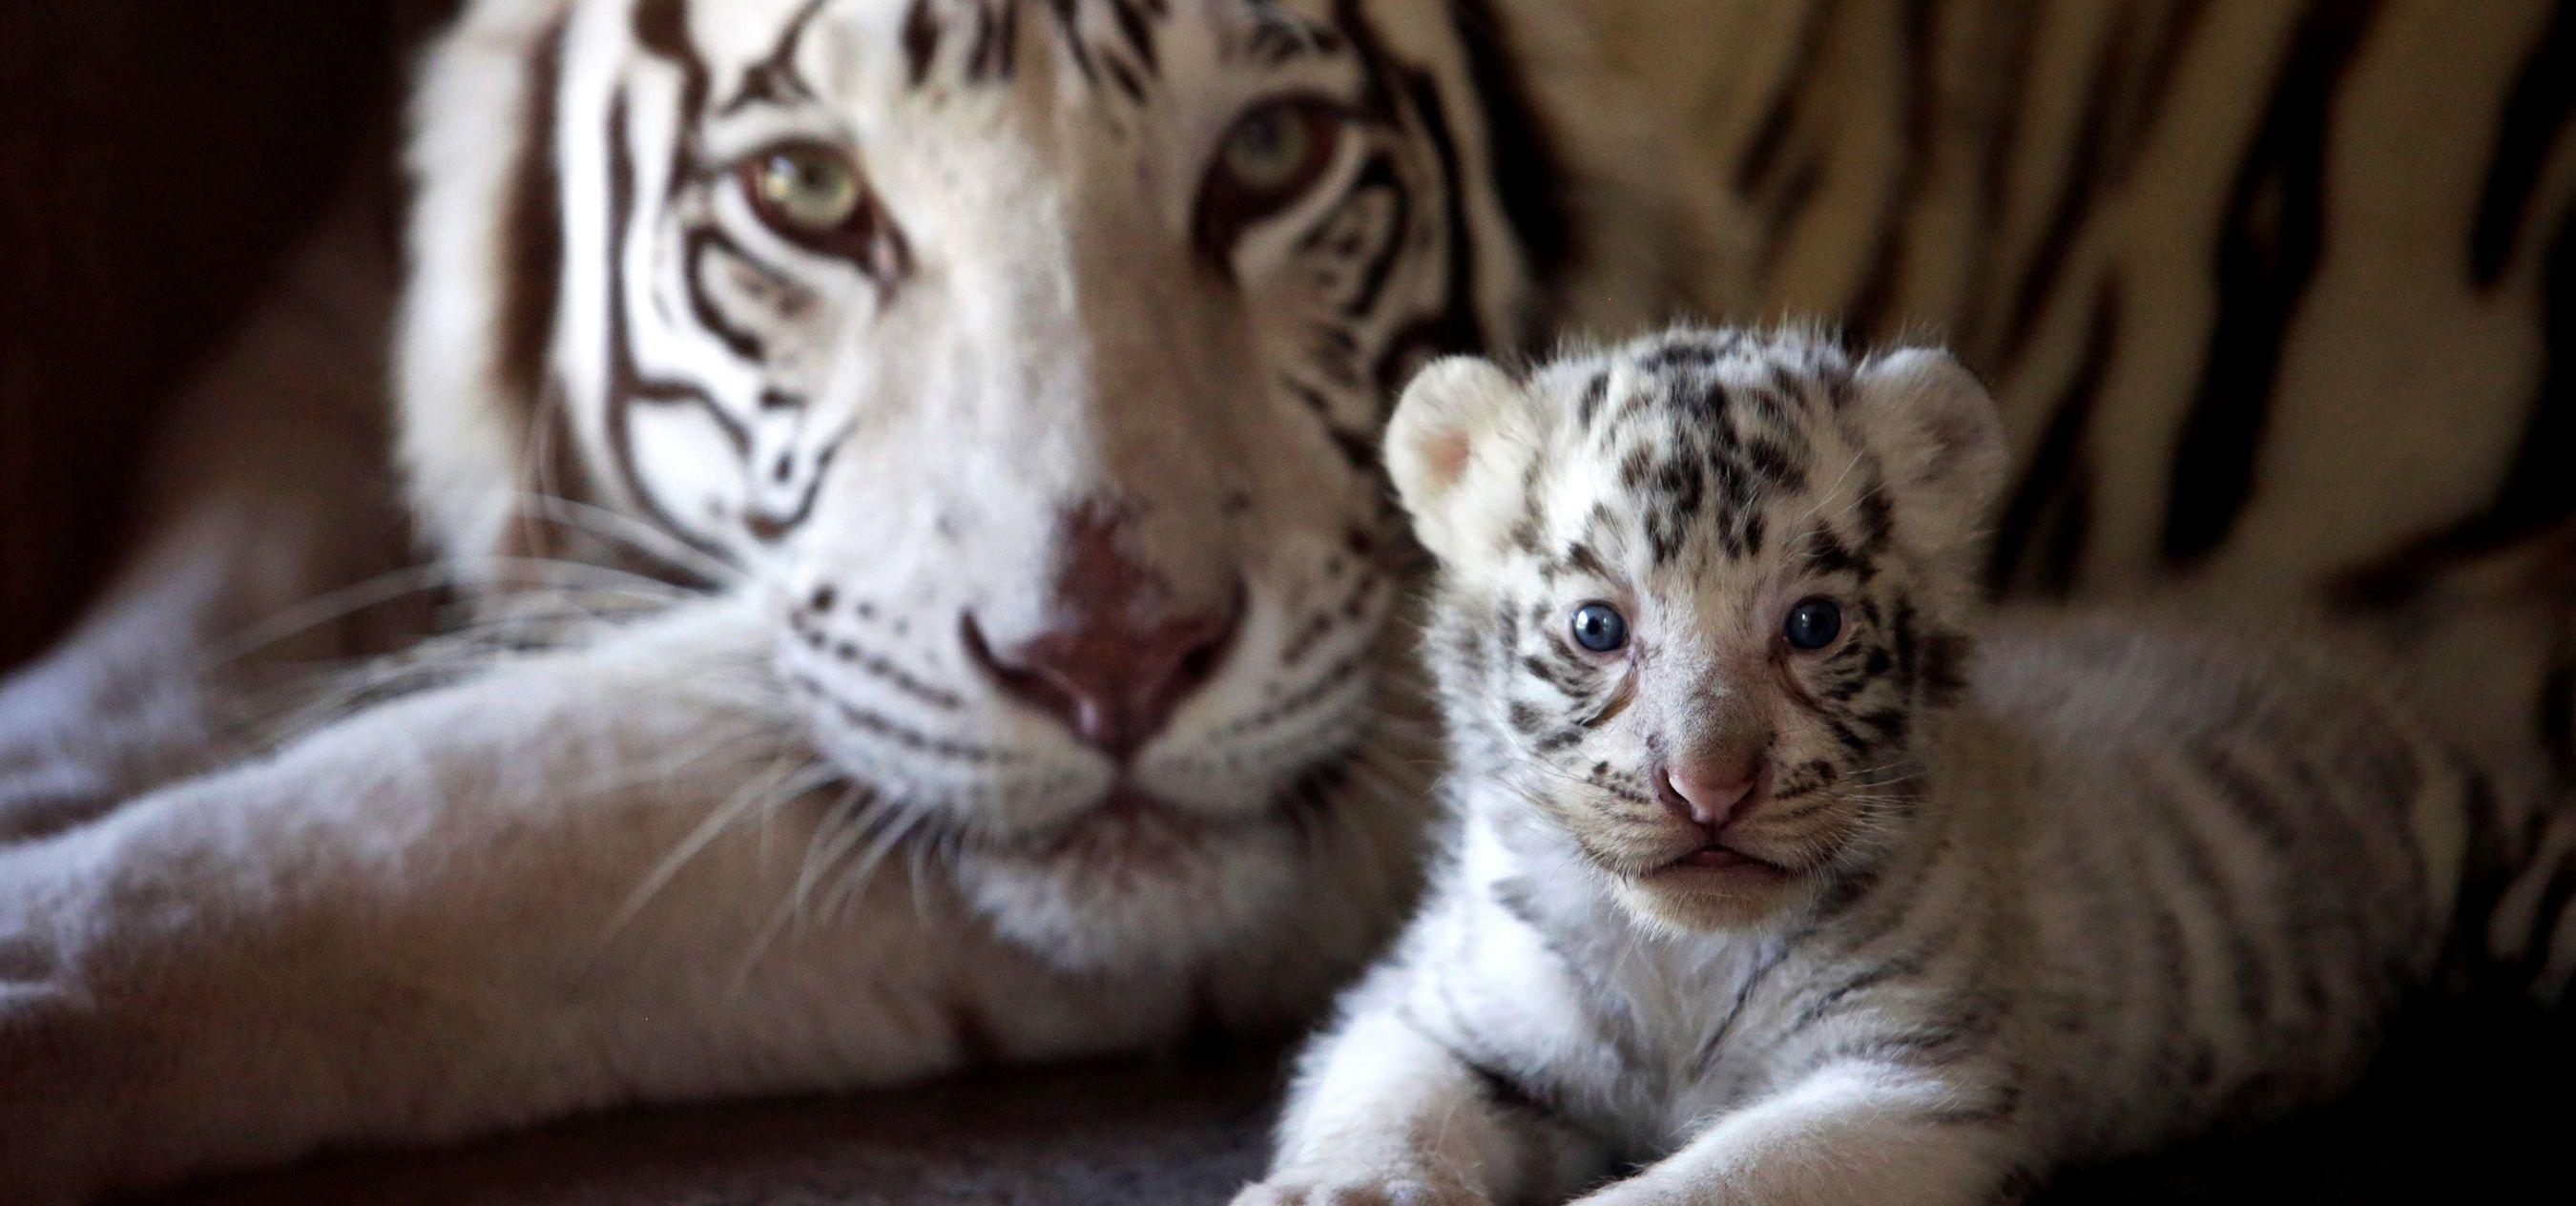 Animal Mothers And Babies 21 Amazing Pictures From Animal